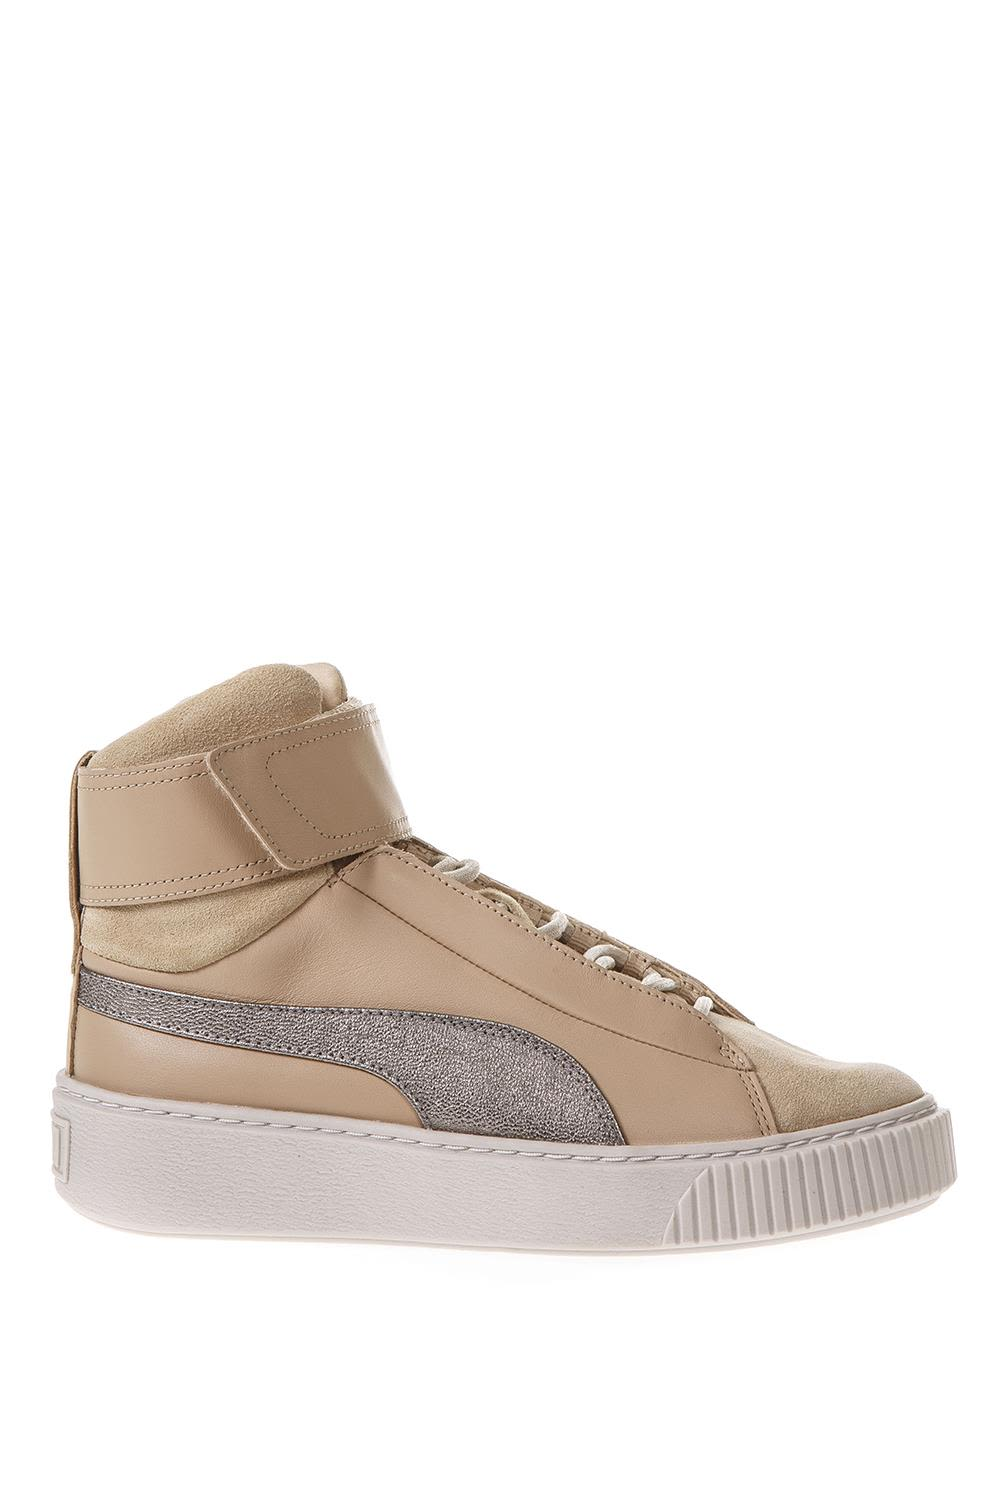 Puma Select Platform Mid High Tops